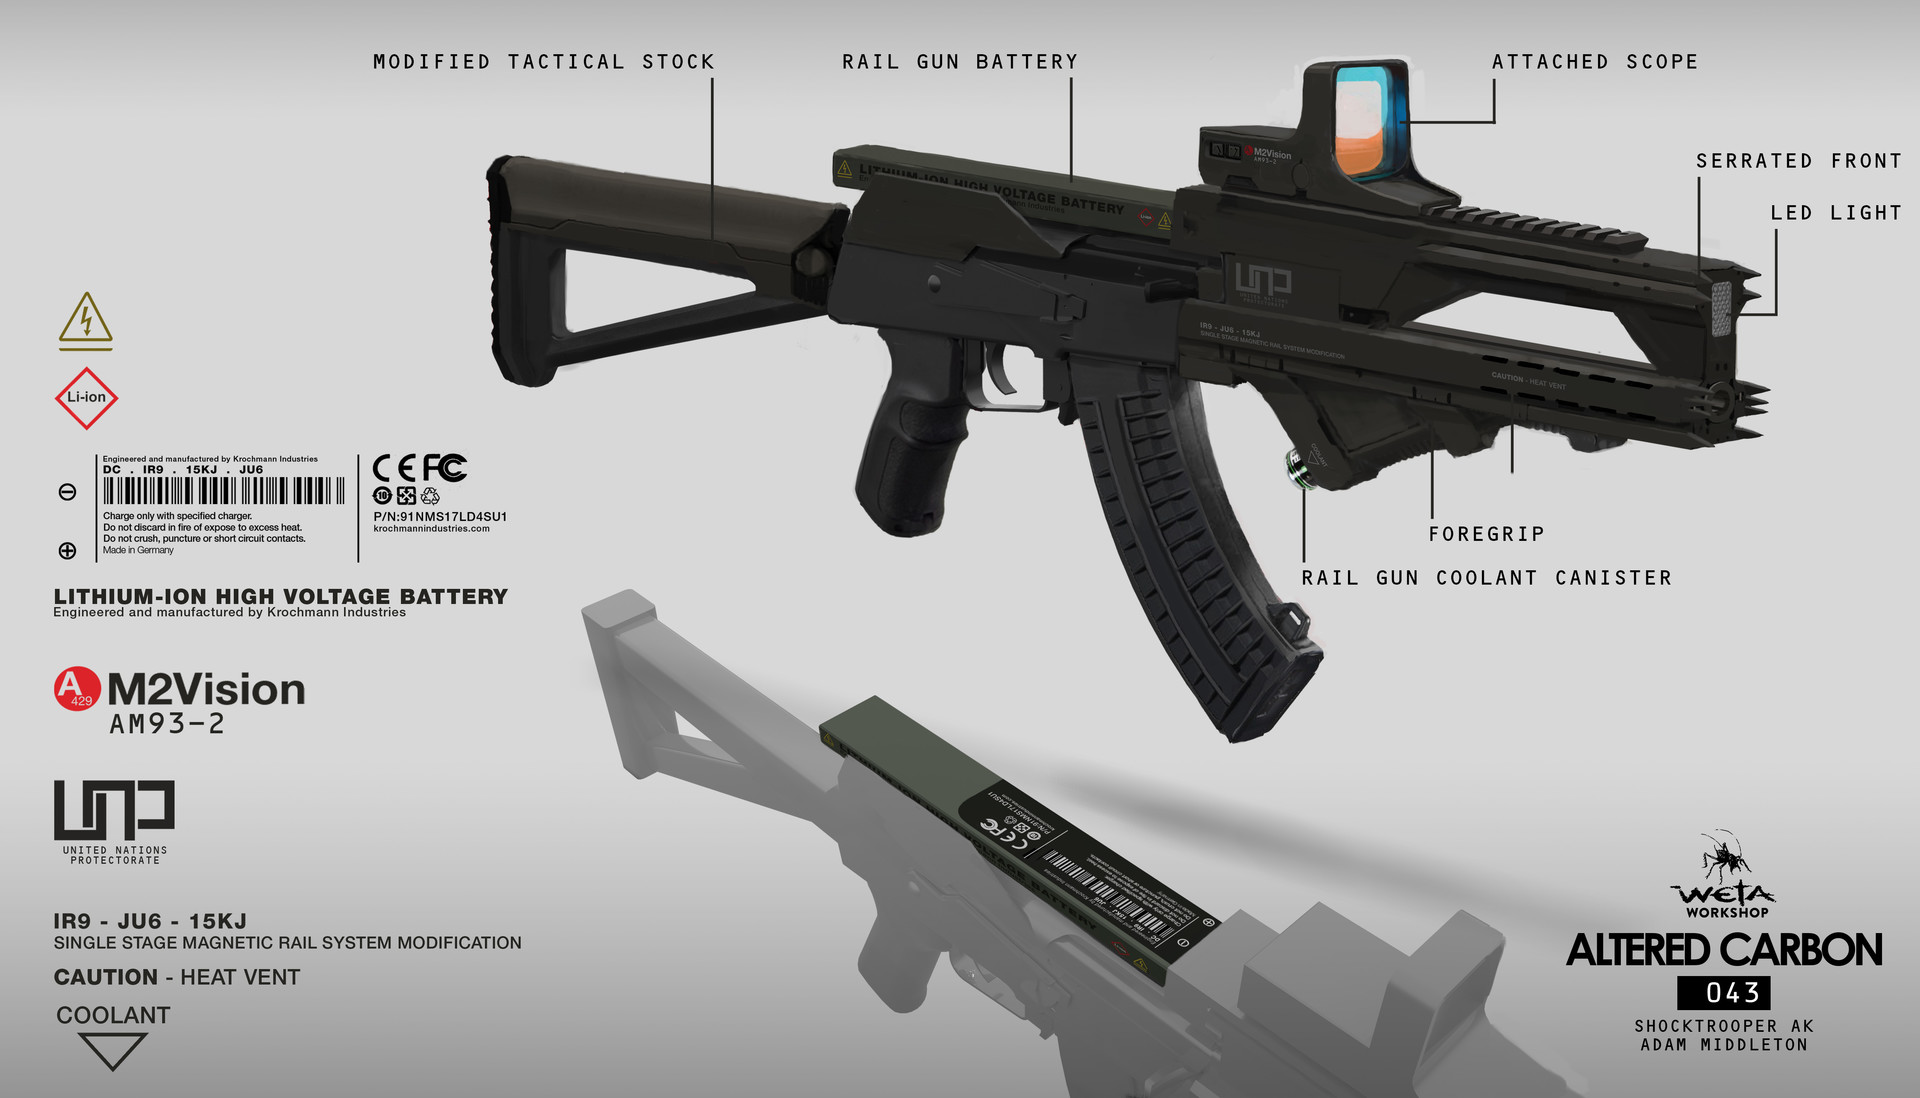 Shock Trooper Modified AK-47 - Artist: Adam Middleton